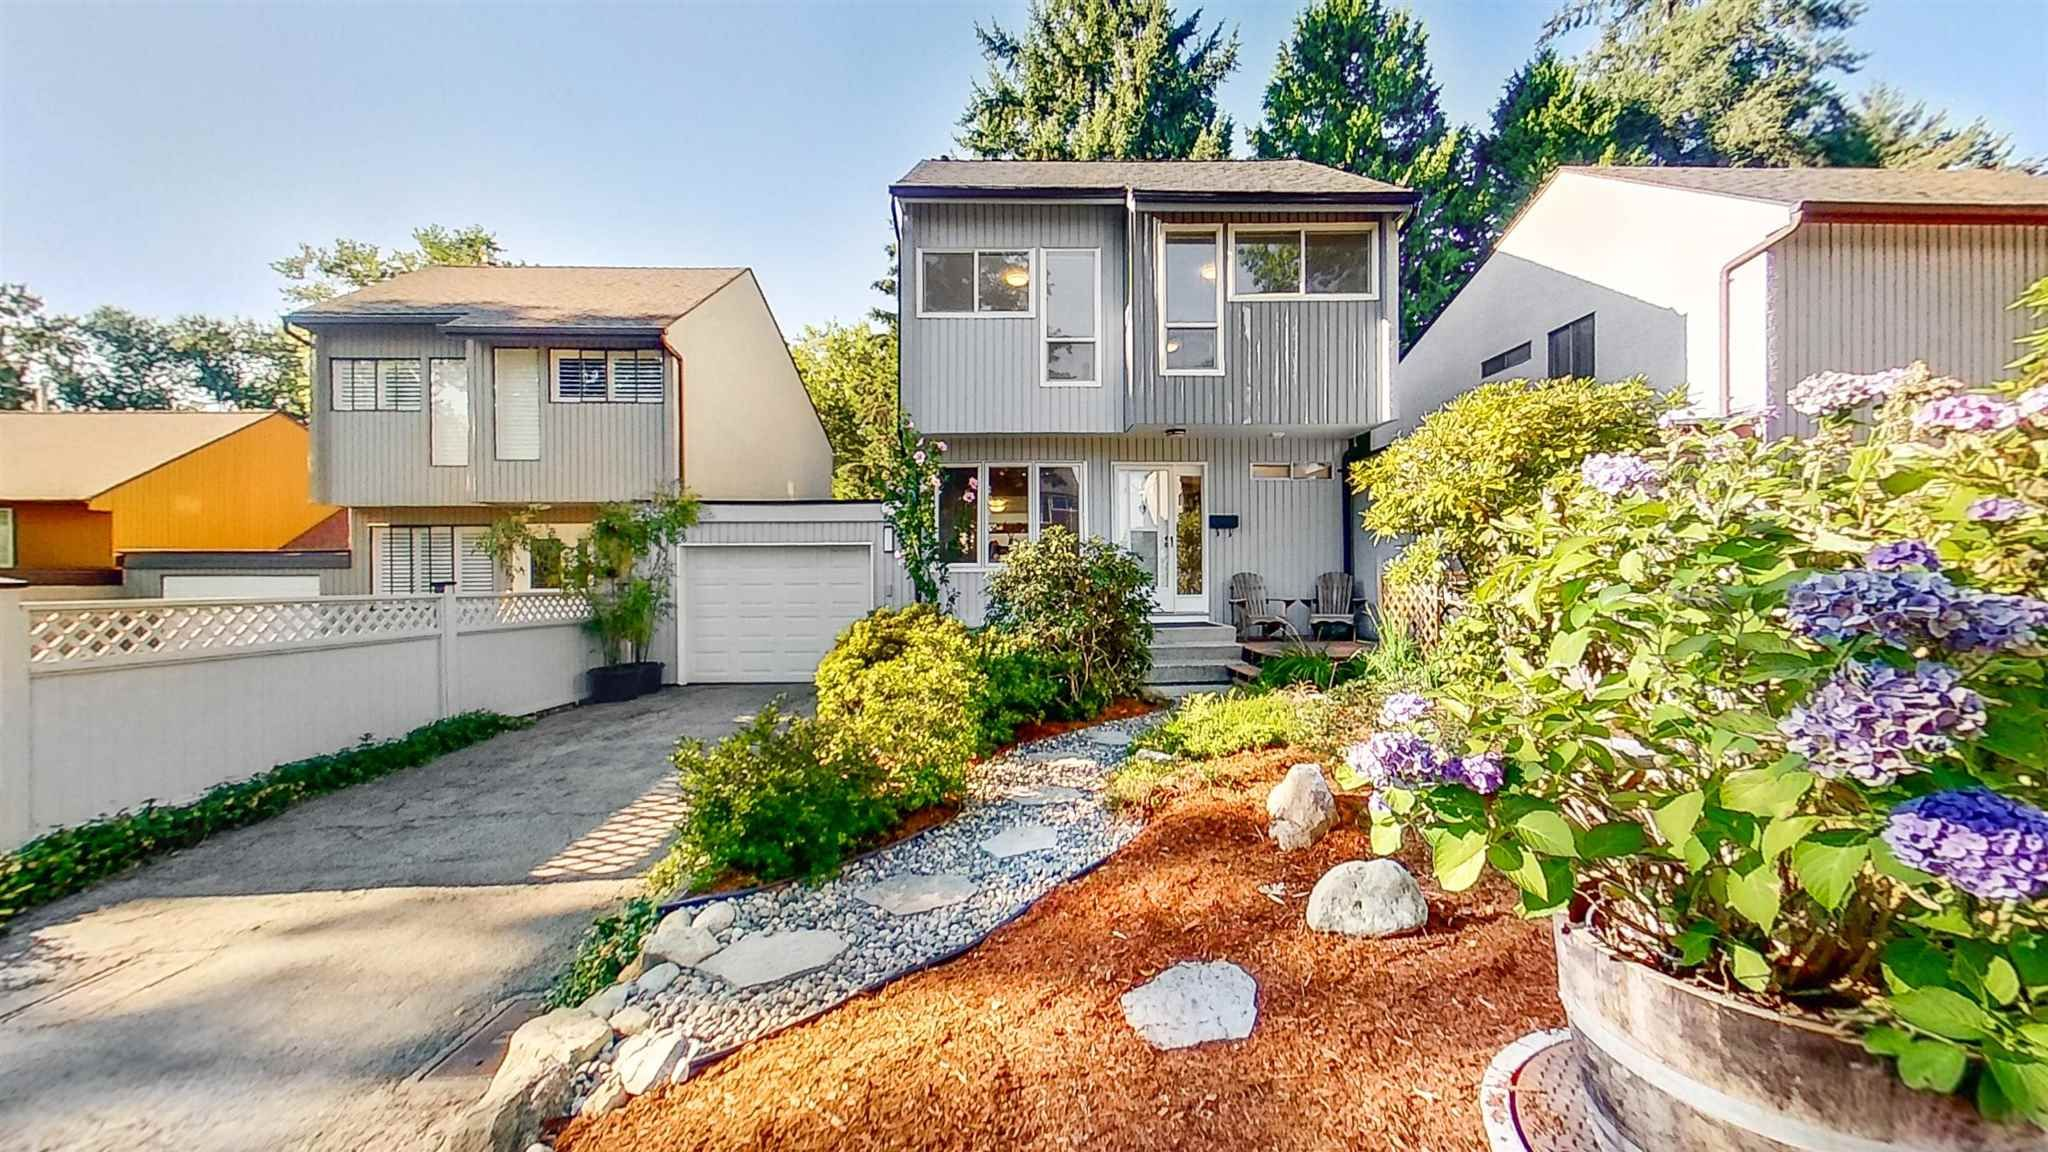 """Main Photo: 4847 HICKORY Court in Burnaby: Greentree Village House for sale in """"Greentree Village"""" (Burnaby South)  : MLS®# R2607347"""